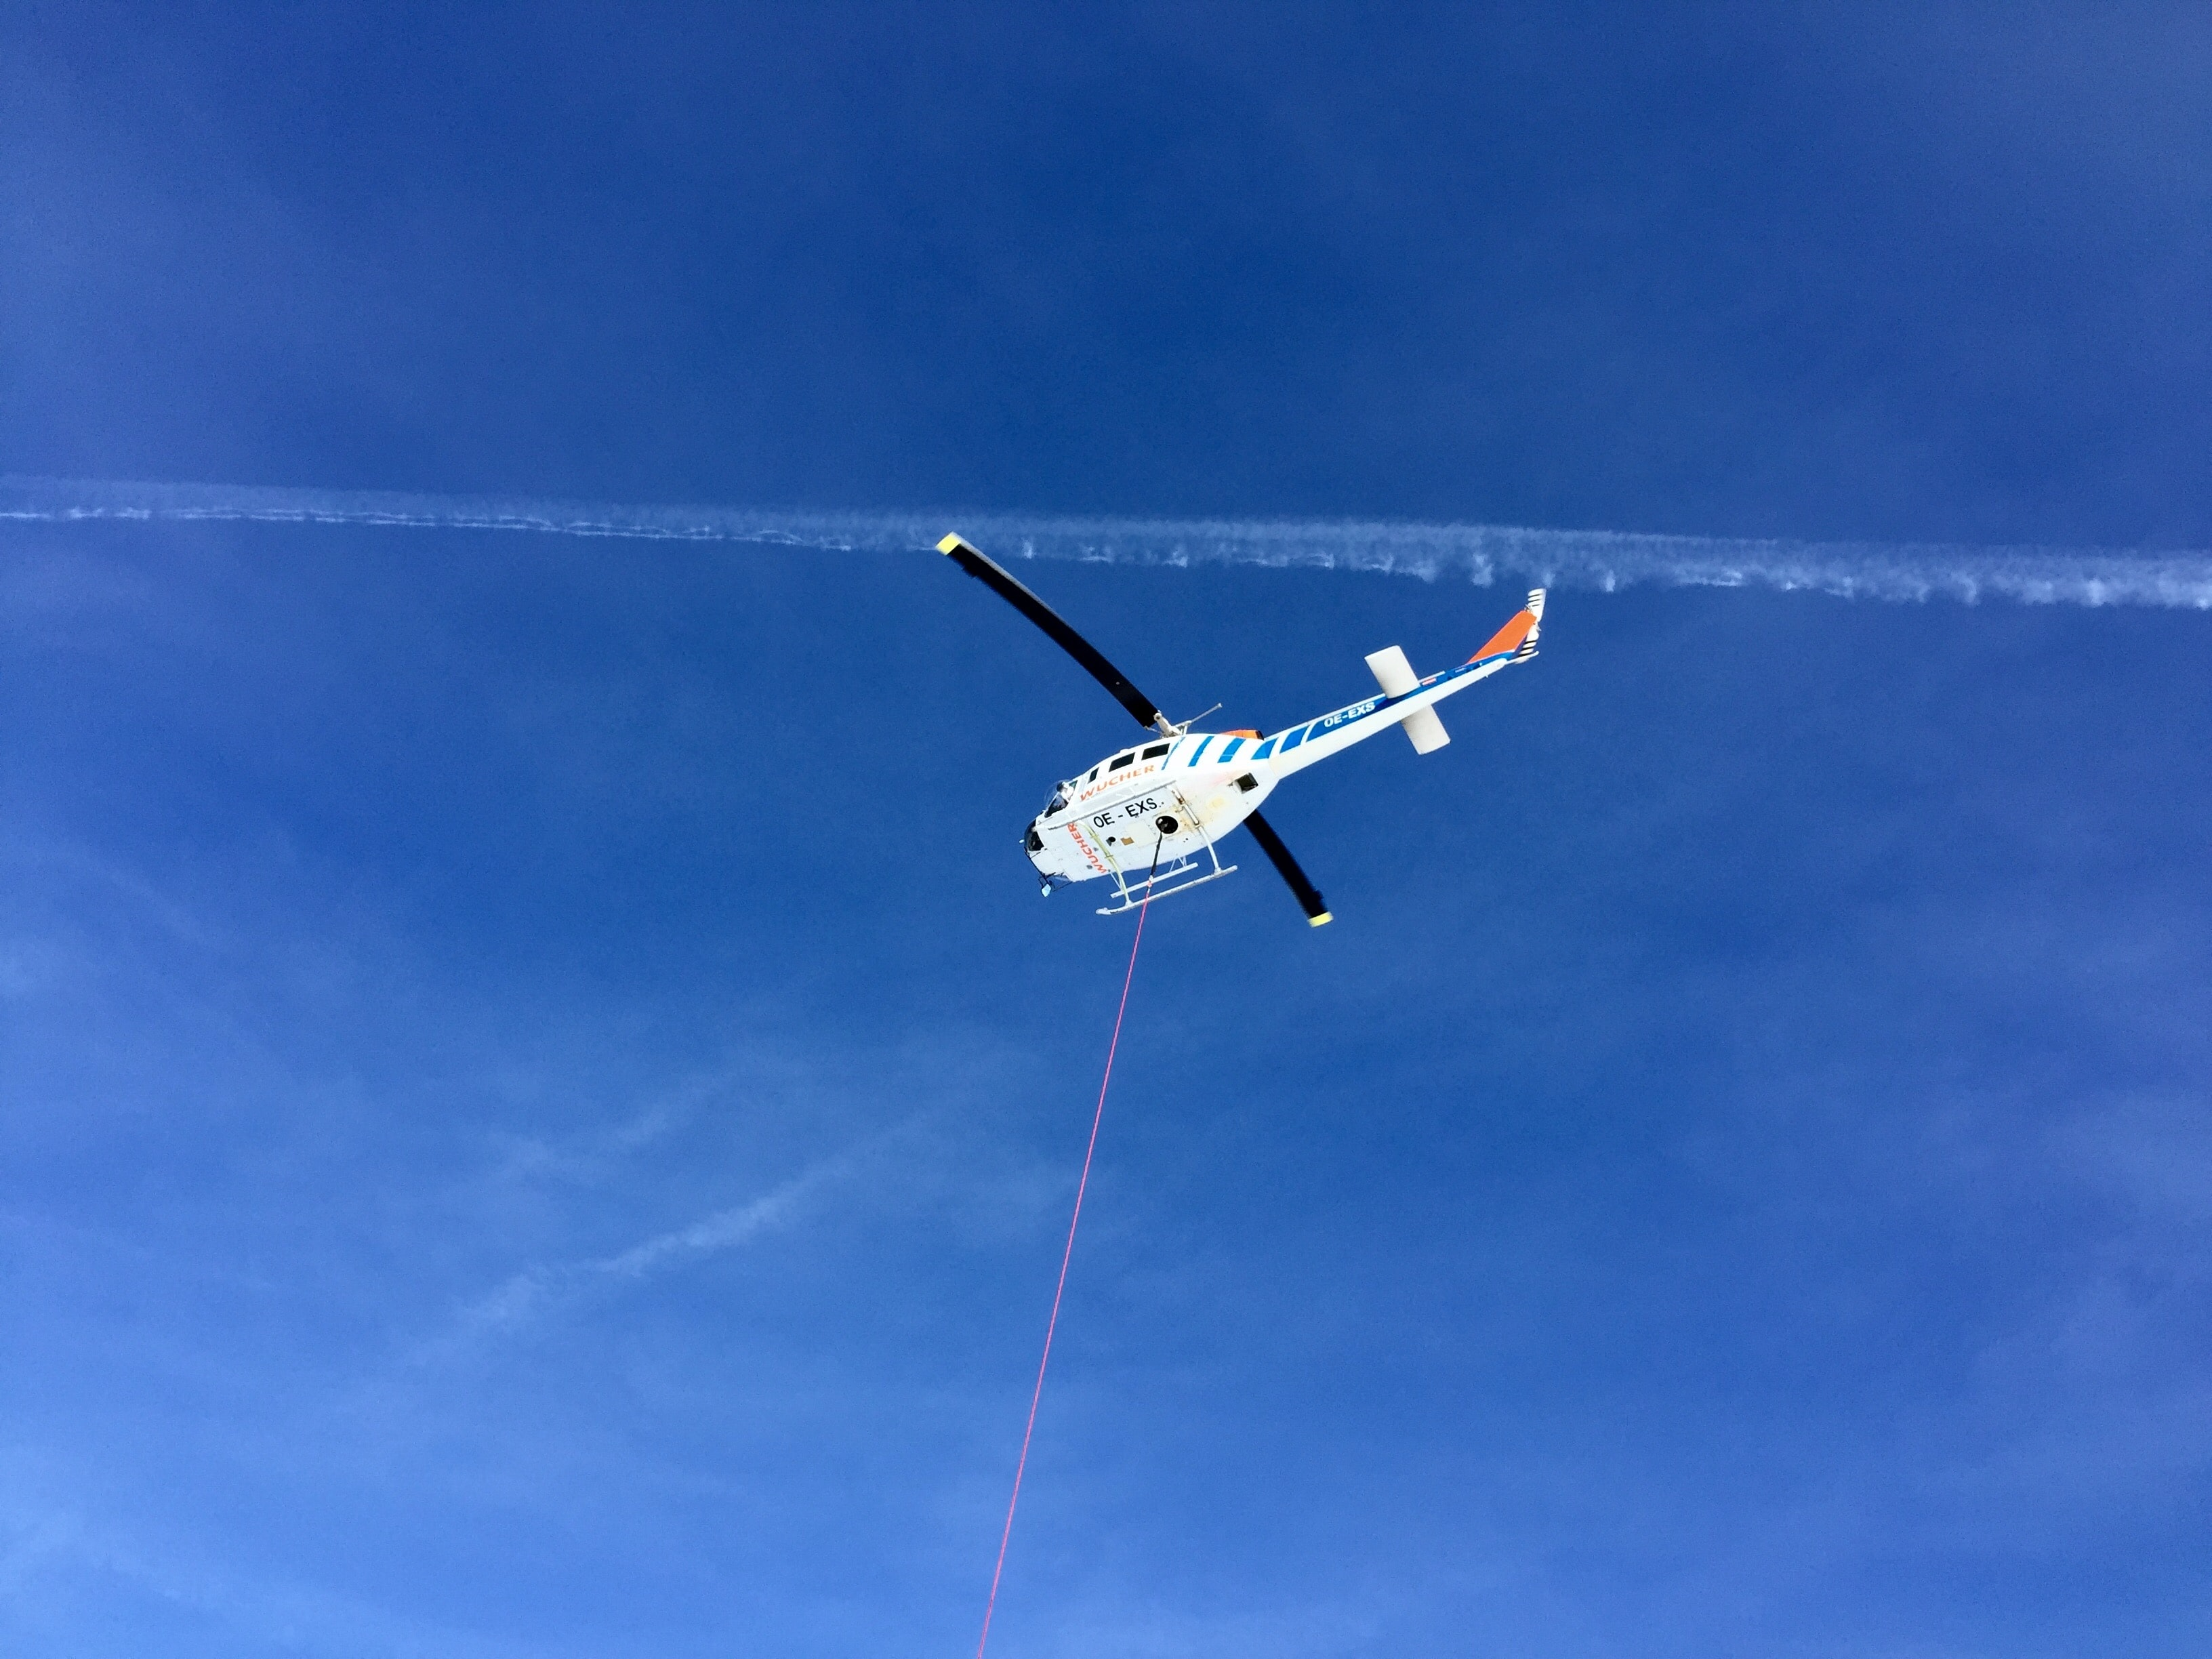 worm's-eye view of helicopter under cloudy sky